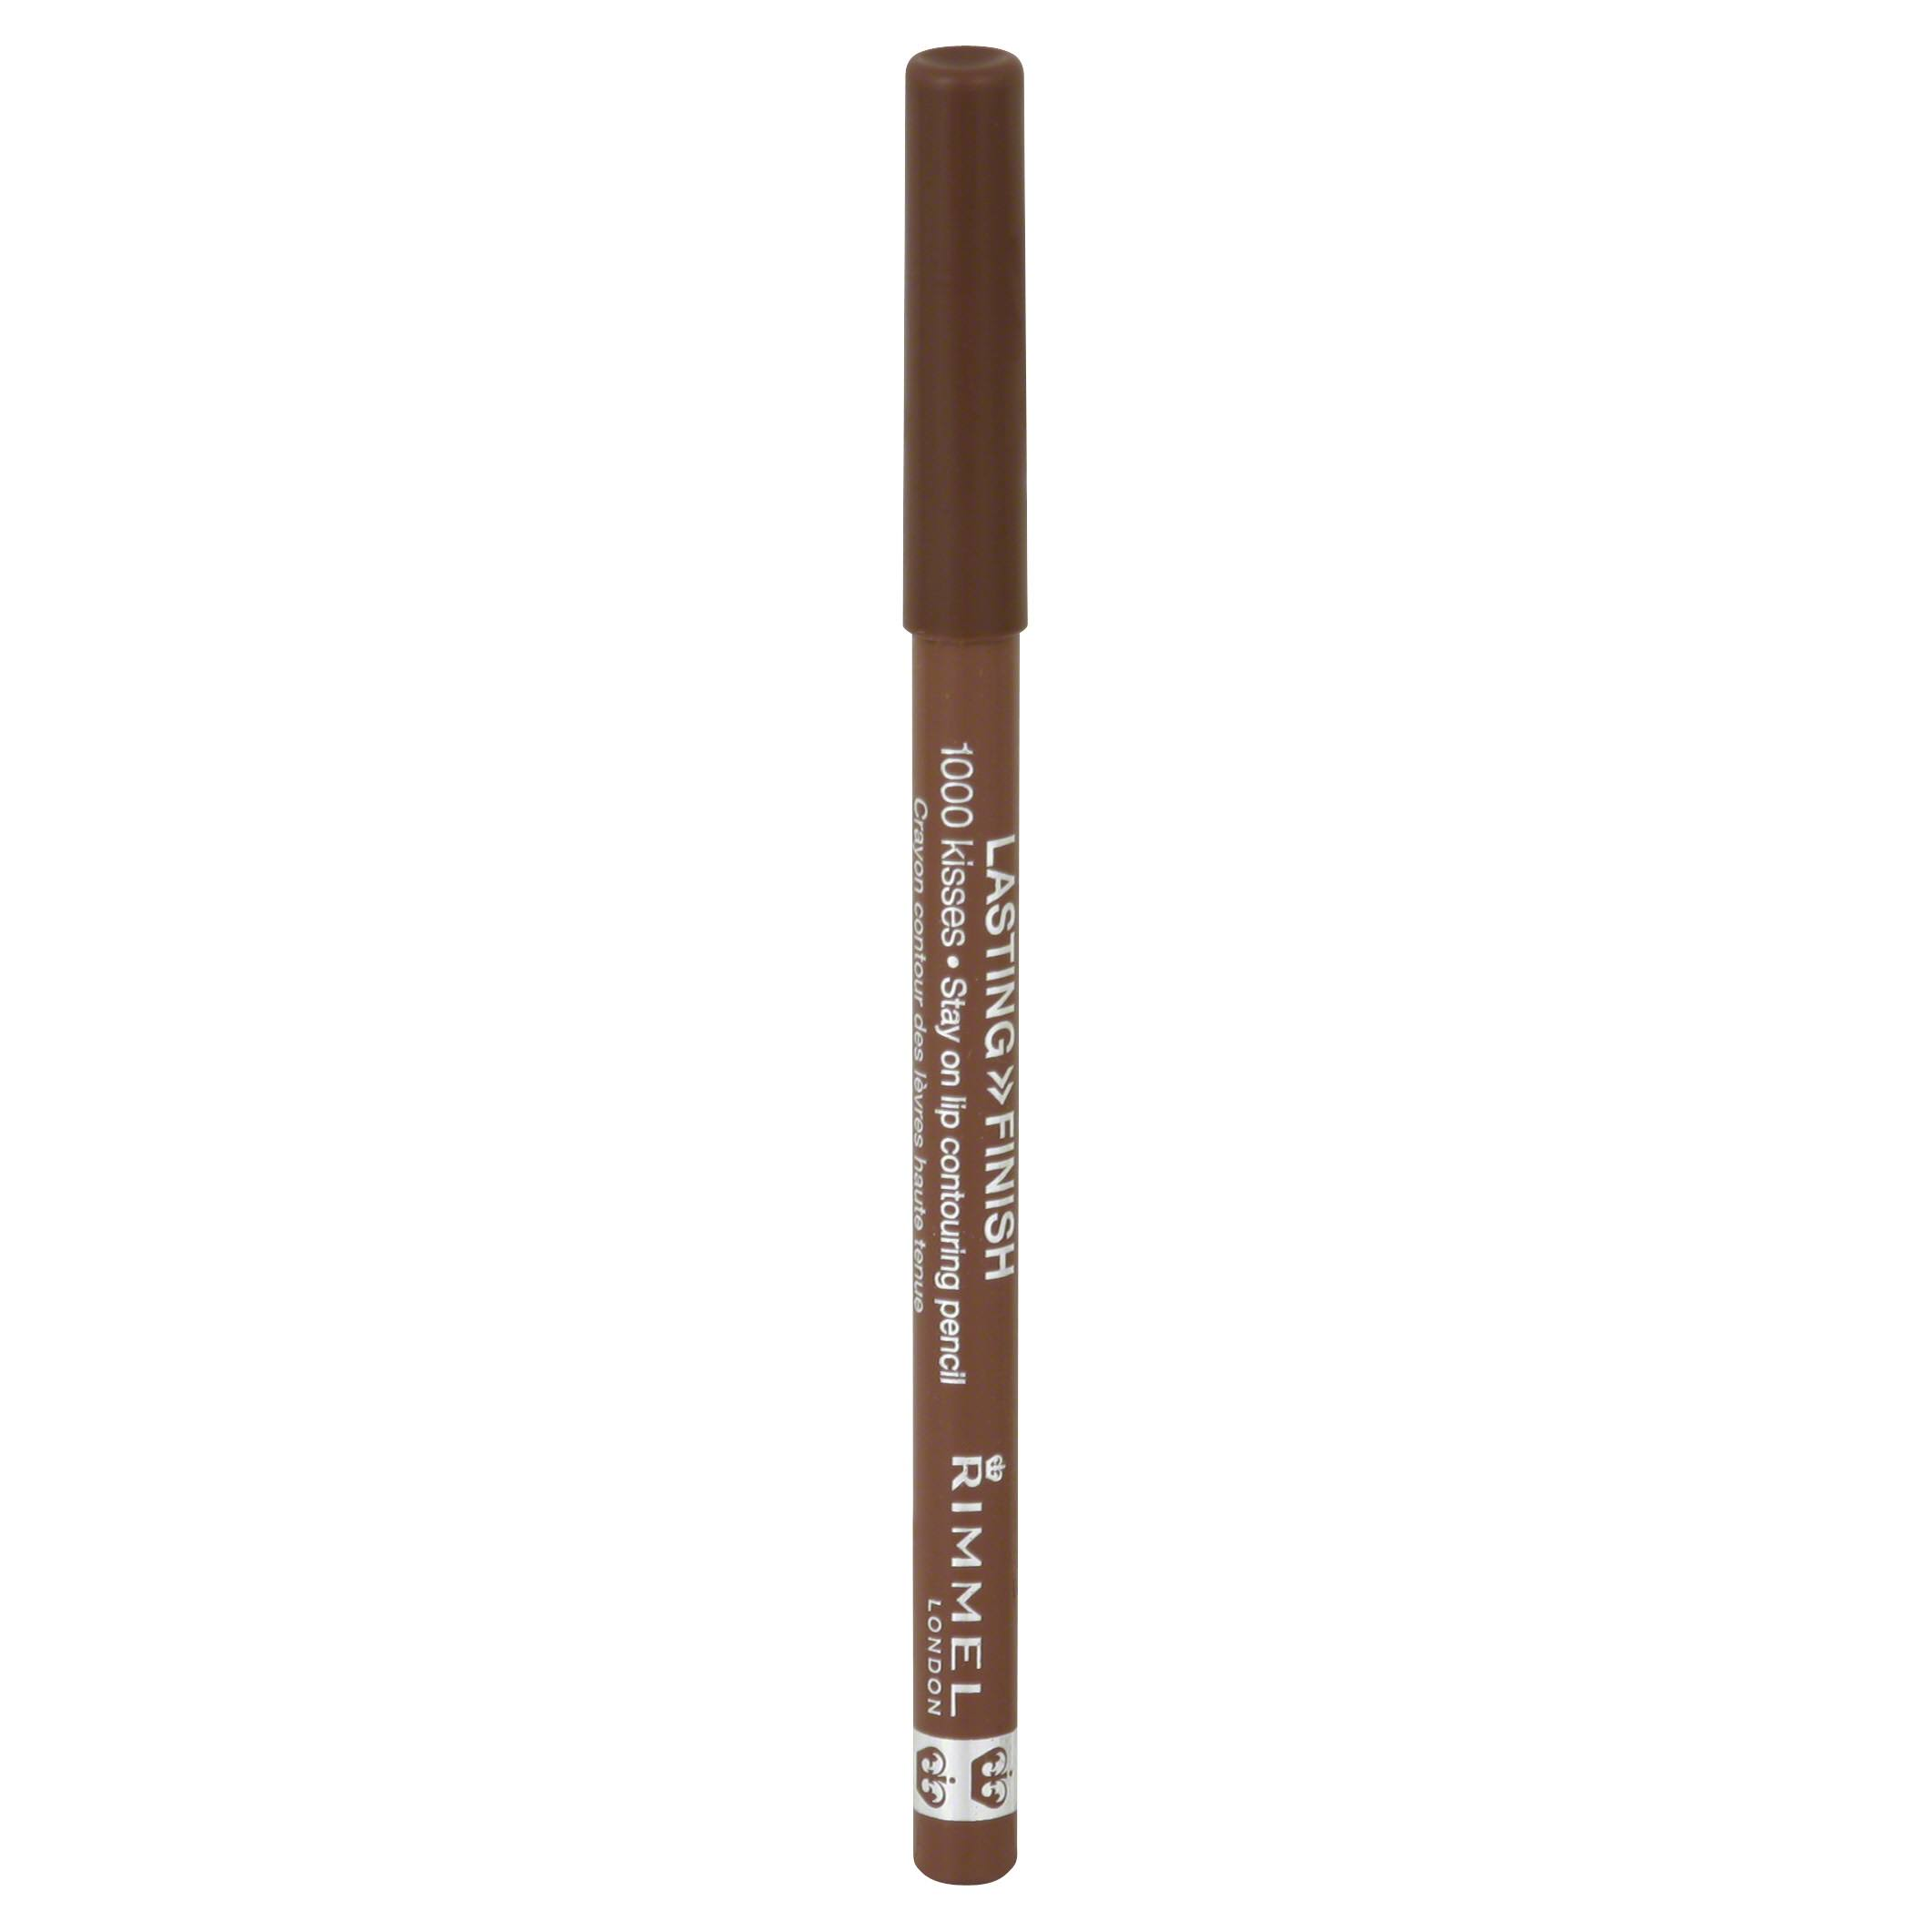 Rimmel London Lasting Finish 1000 Kisses Stay on Lip Colouring Pencil - 047 Cappuccino, 1.2g